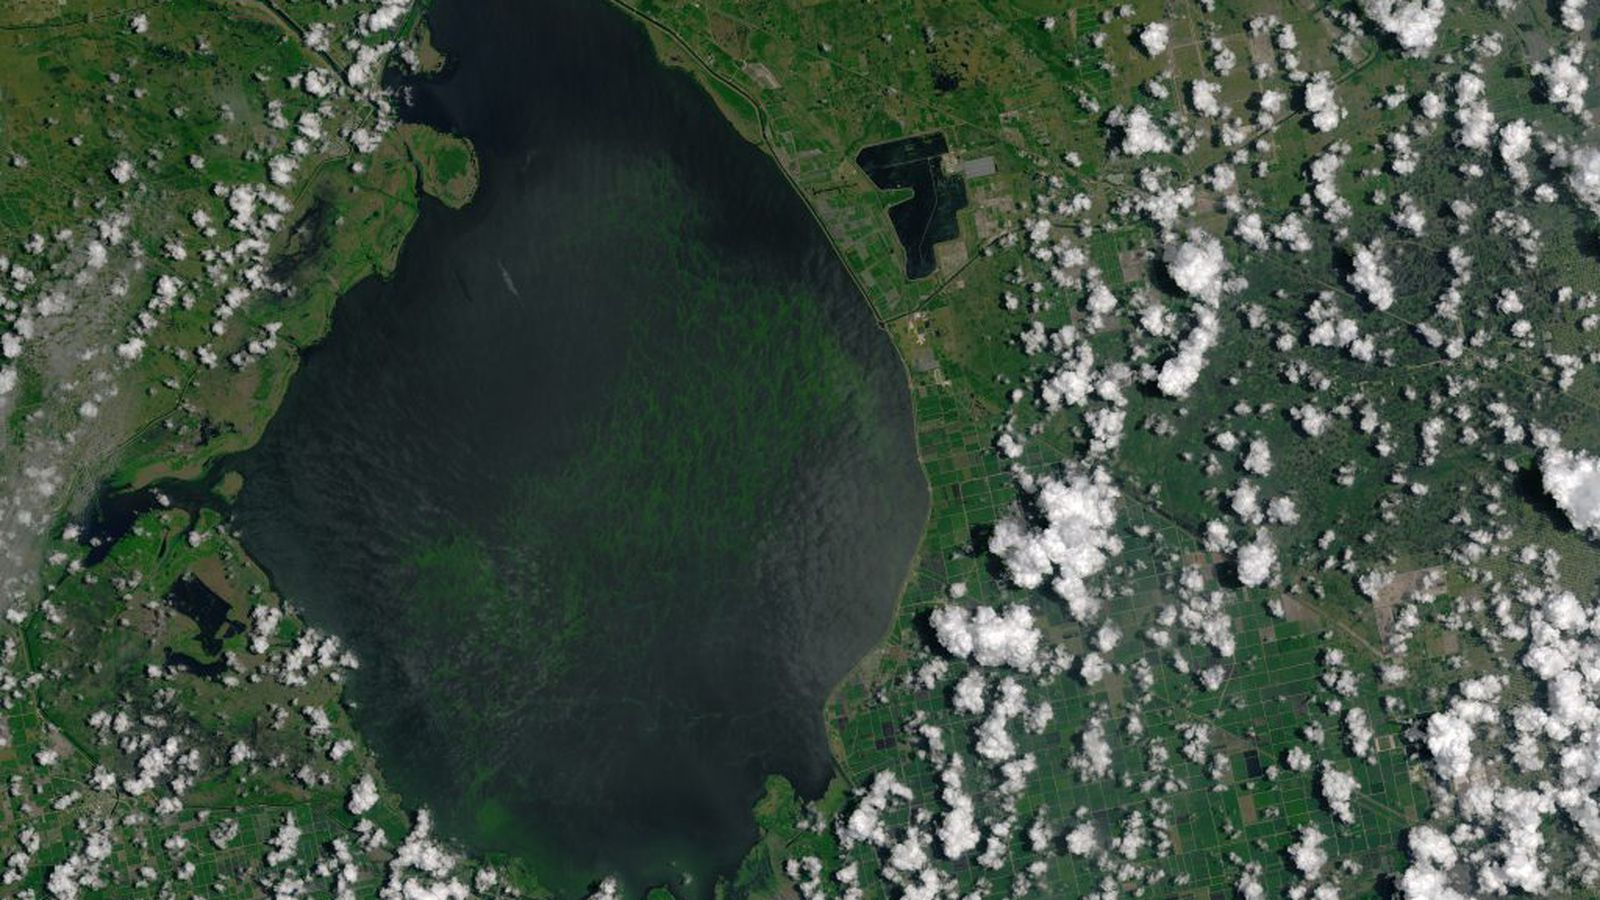 In early May 2016, an algae bloom grew to cover 85 square kilometers (33 square miles) of Florida's Lake Okeechobee. The conditions that gave rise to the bloom have been blamed for affecting water quality downstream all the way to the Atlantic Ocean.